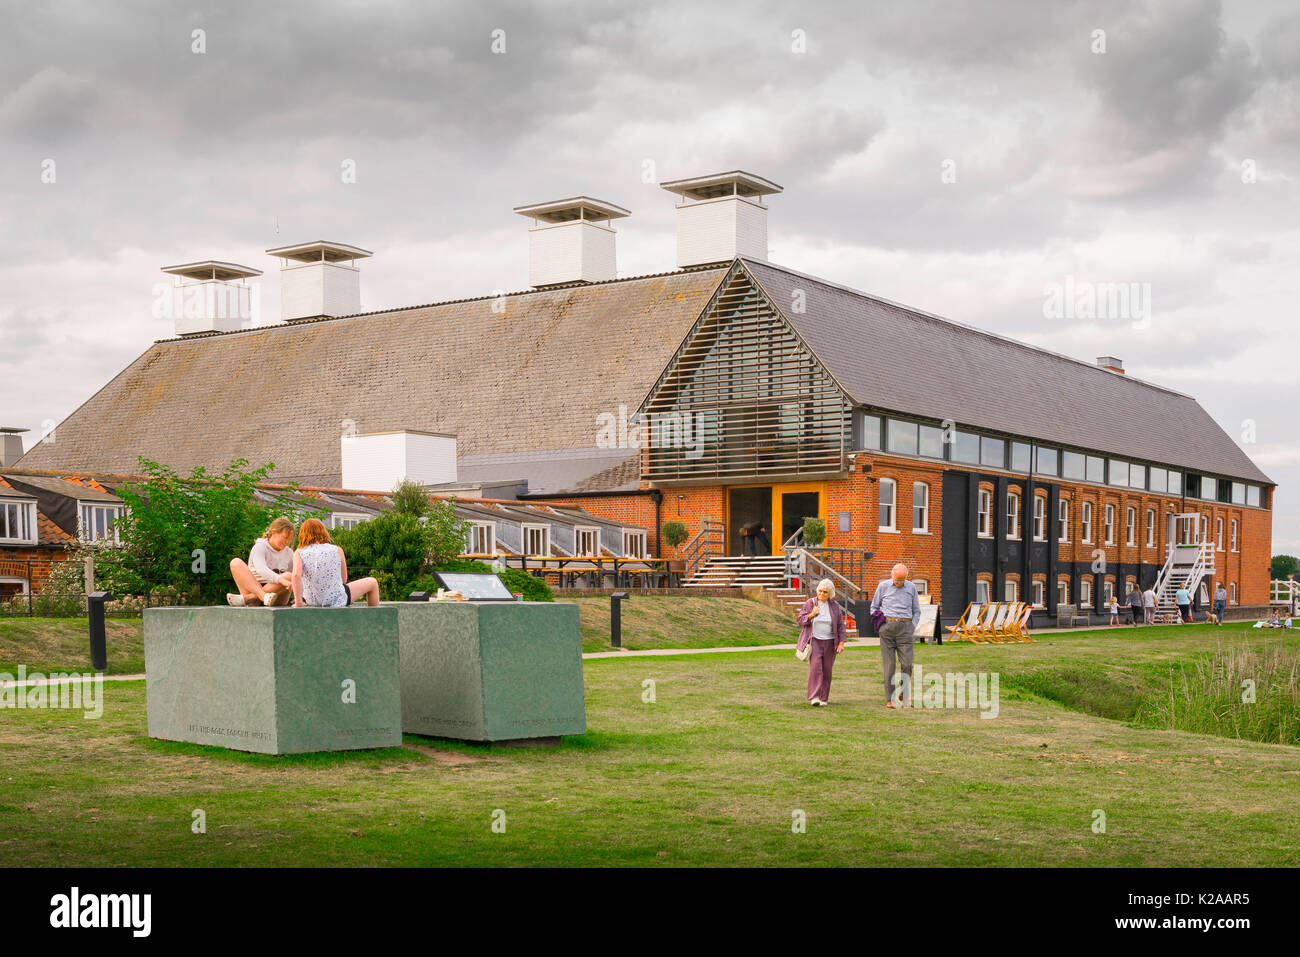 Snape Suffolk Maltings, The Maltings concert hall in Snape, Suffolk, East Anglia, UK. - Stock Image